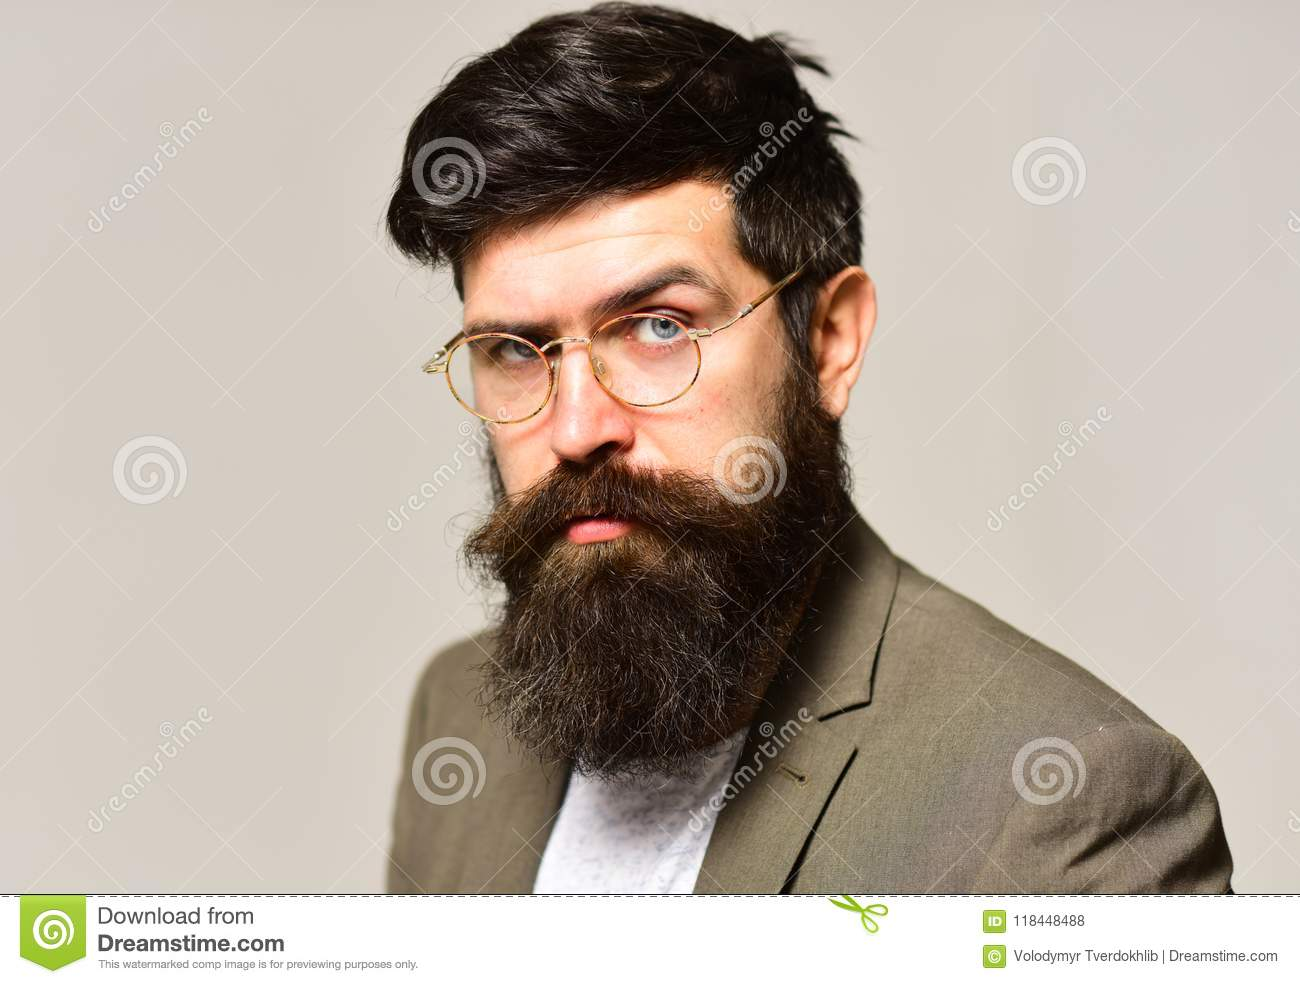 5aaf4cc3a07 Hipster with long beard and mustache on unshaven face. Businessman in suit.  Man teacher wear glasses with genius look. Fashion accessory and business  style.